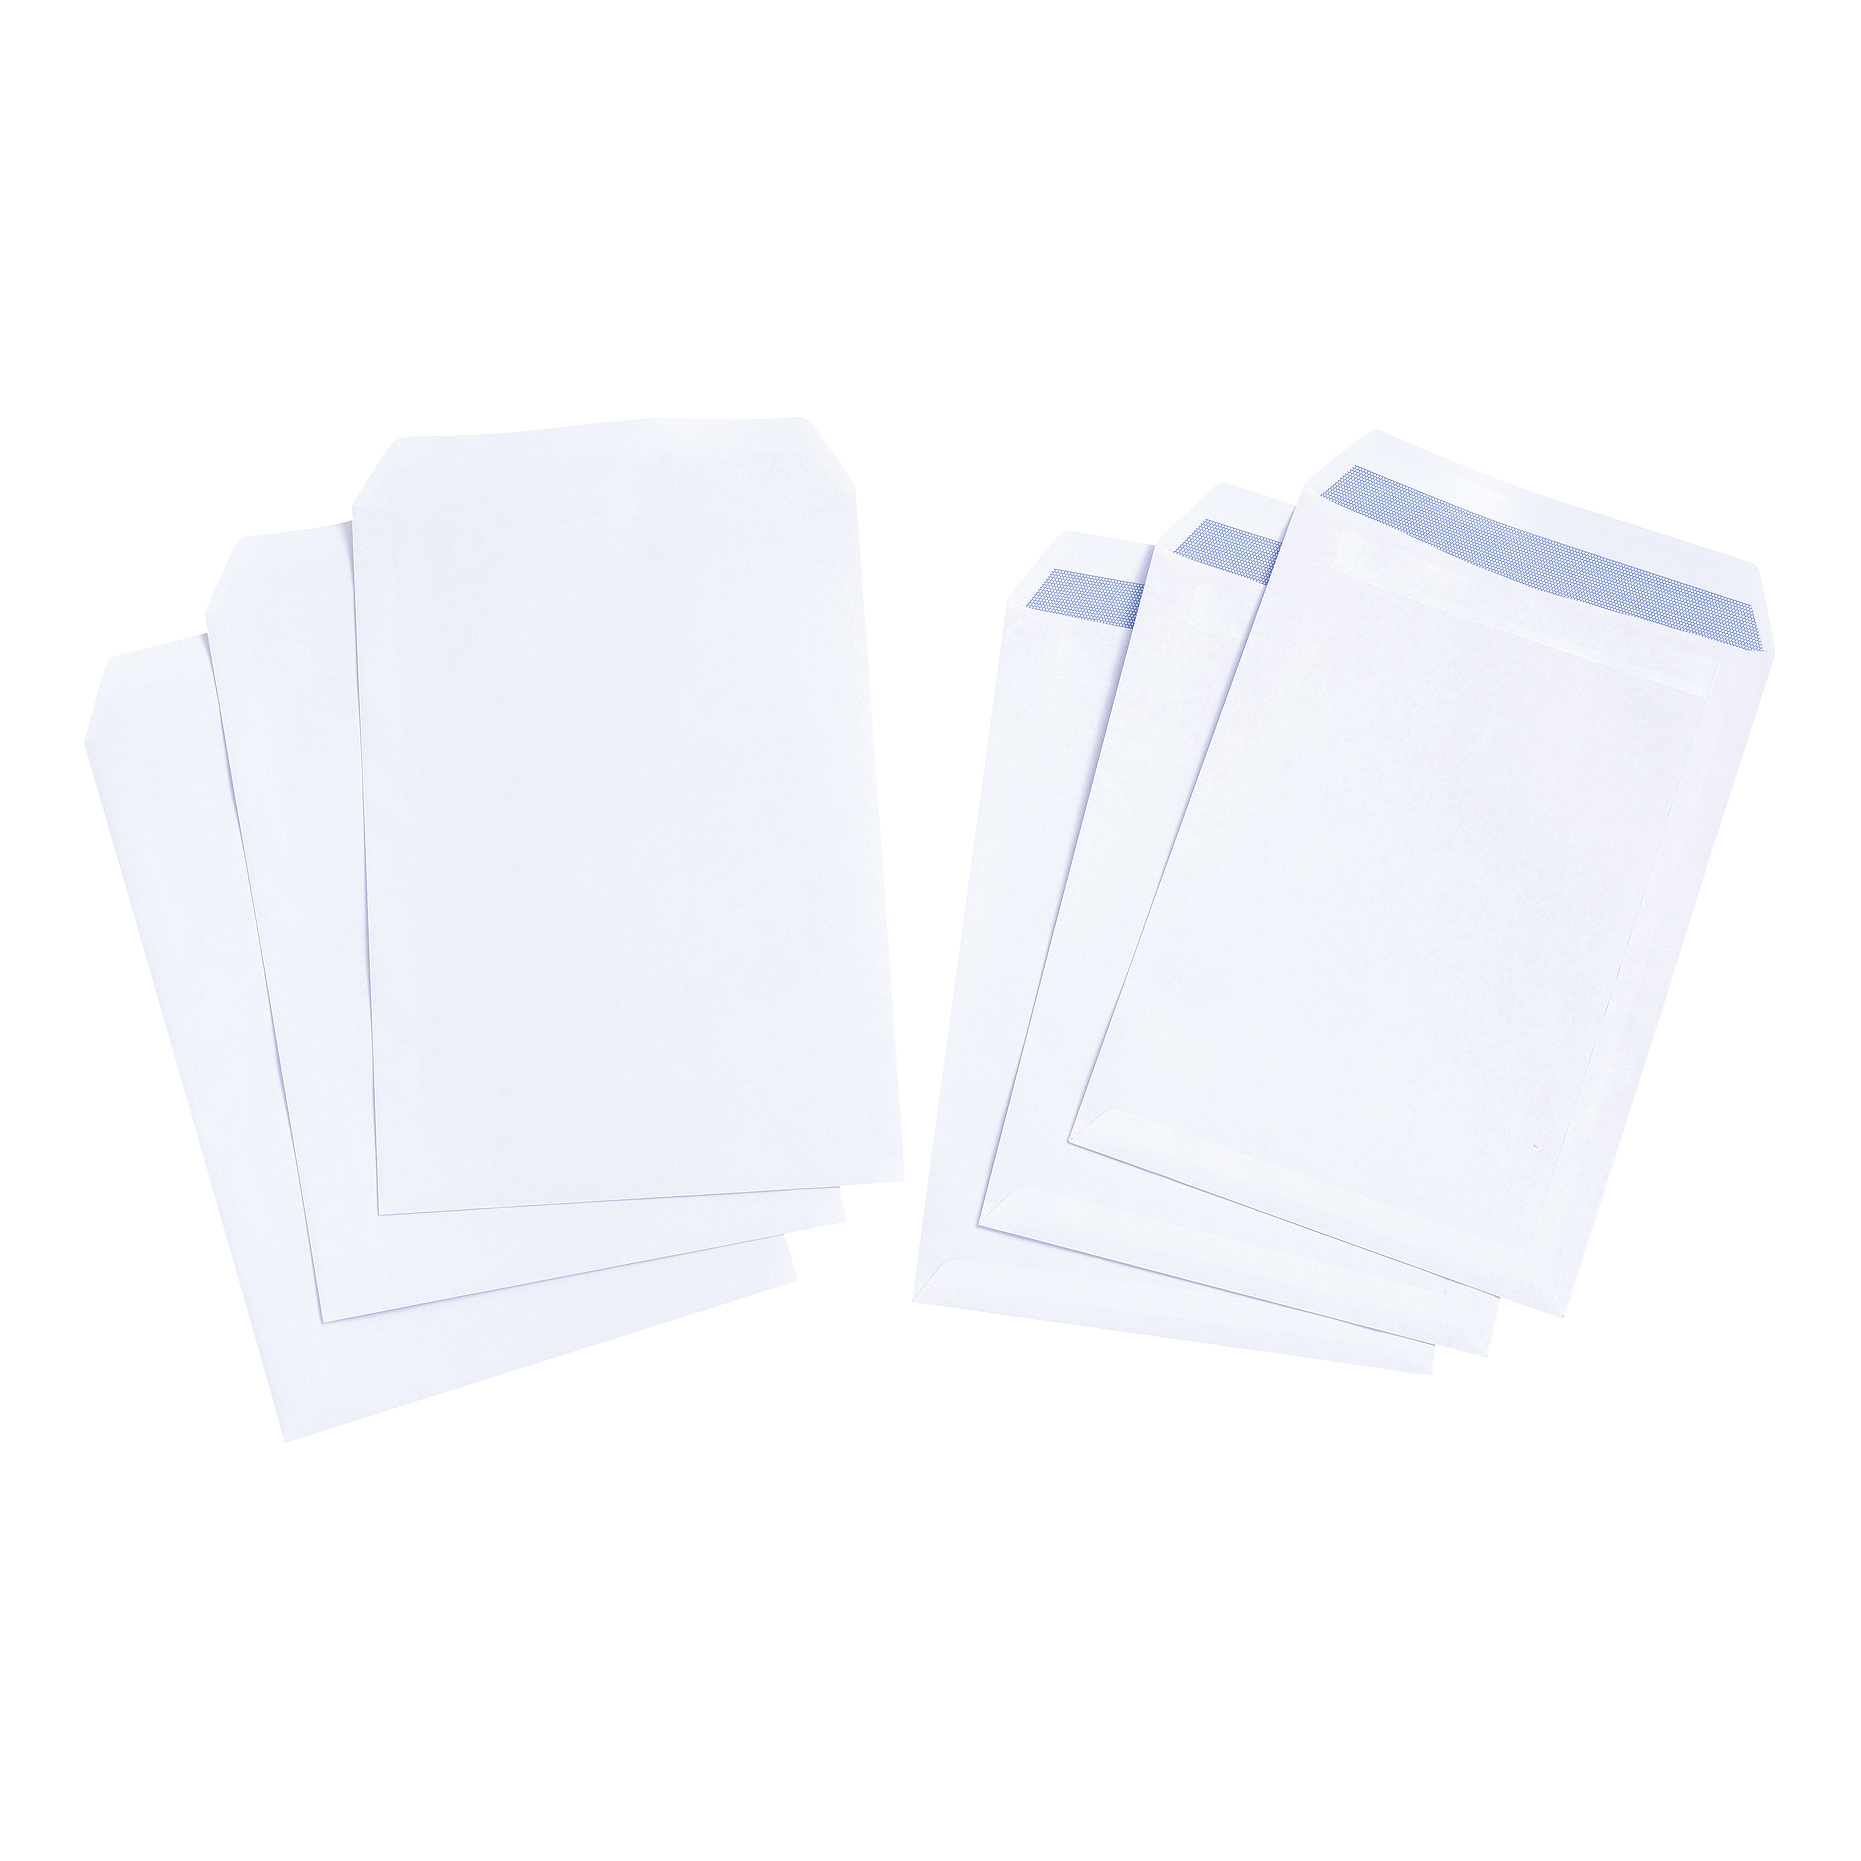 C4 5 Star Value Envelope C4 Pocket Self Seal 90gsm White Pack 250